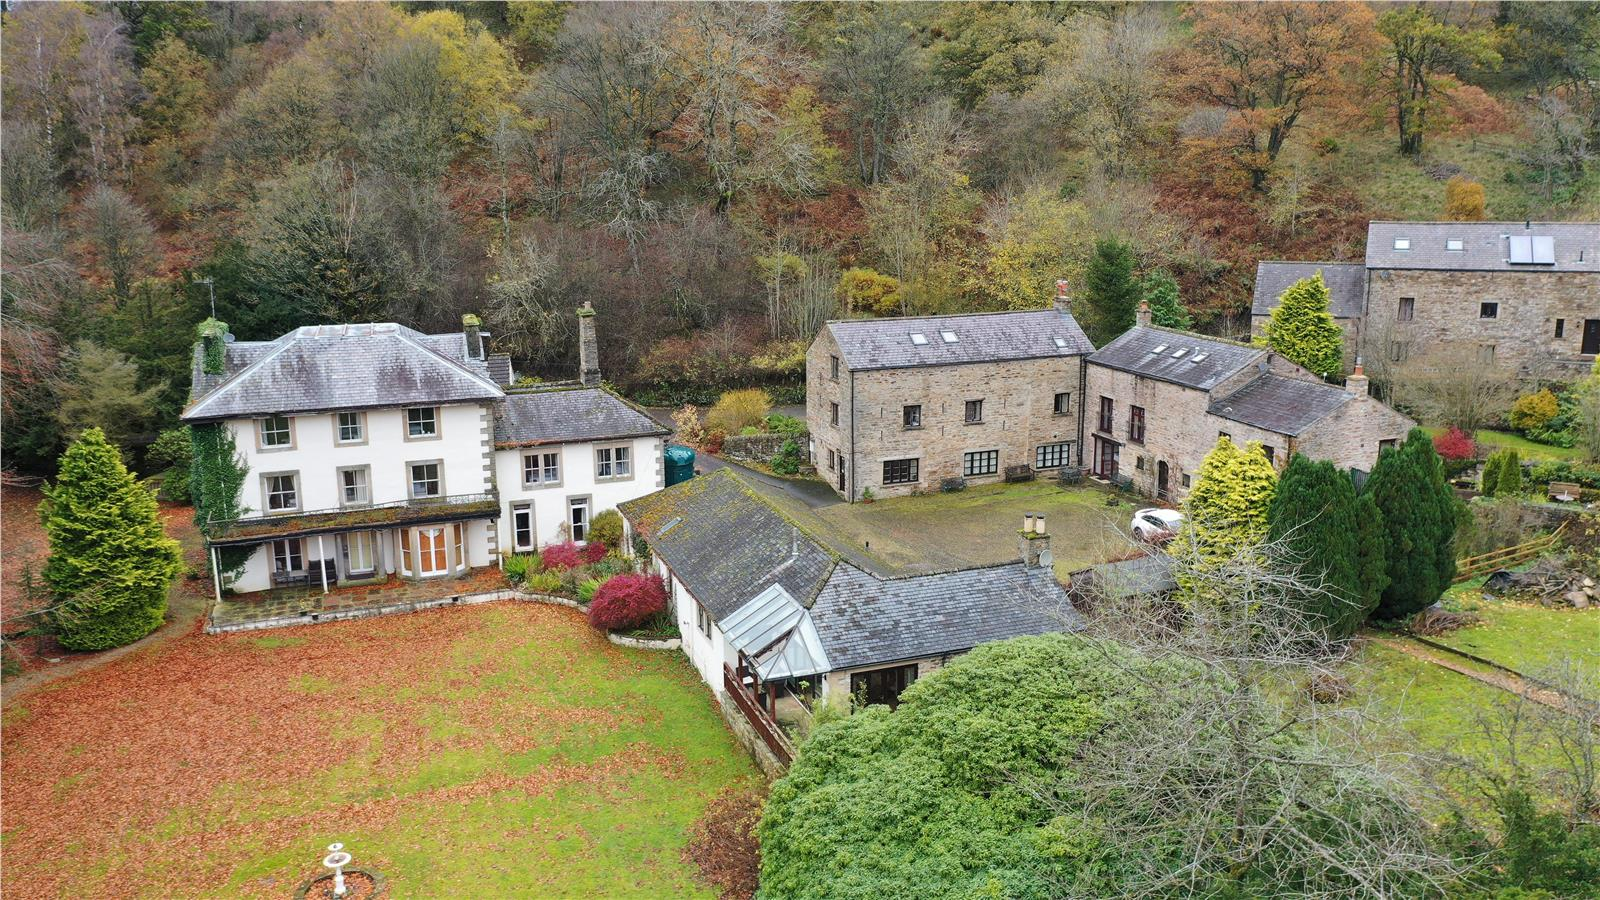 Lovelady Shield Country House Hotel And Cottages, Lovelady Lane, Alston, Cumbria, CA9